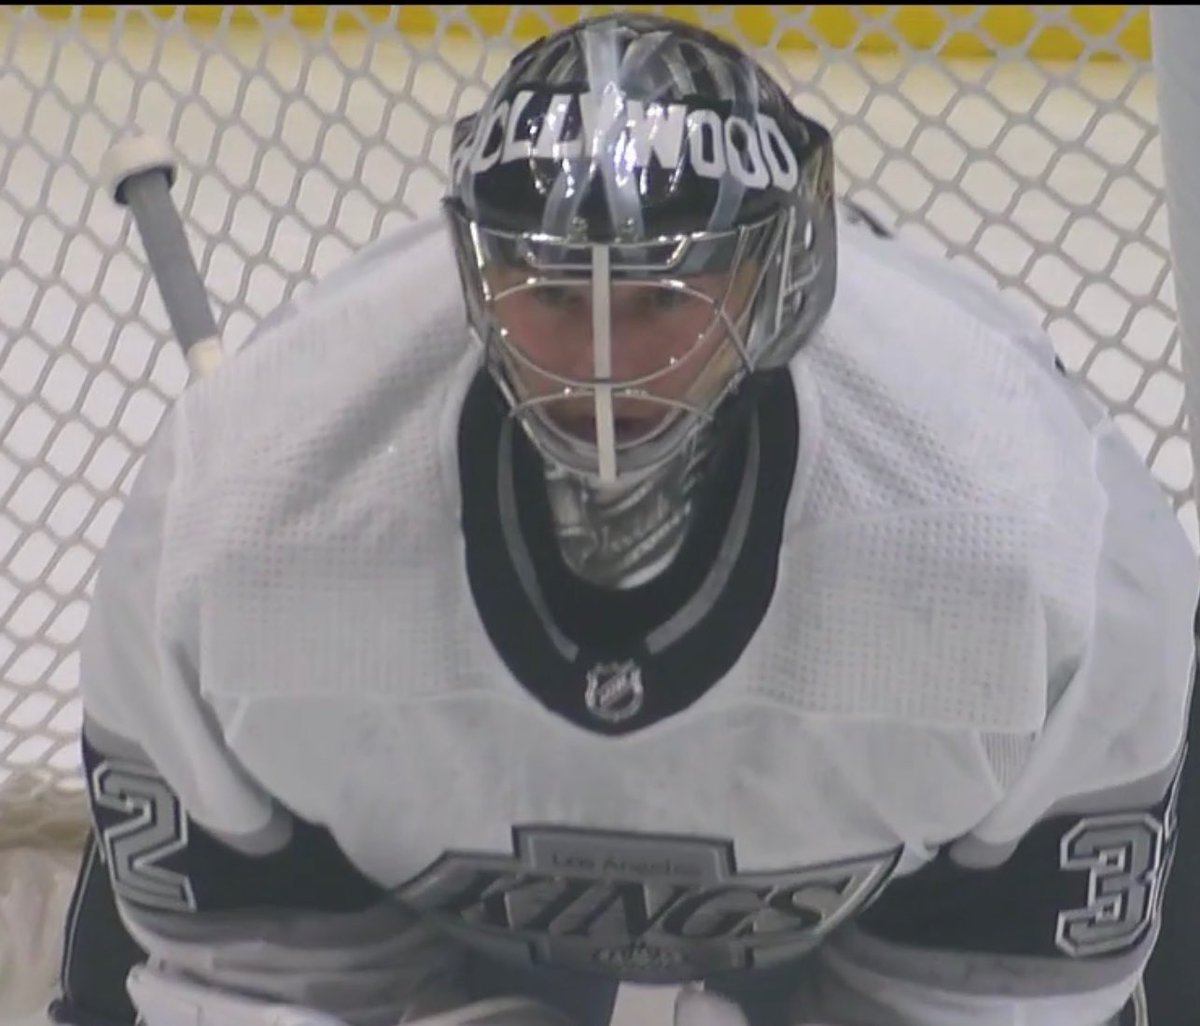 @UniWatch @PhilHecken Jonathan Quick is wearing a tribute mask to Kelly Hrudey on 90s night...still looks like it has elements of his Knight mask